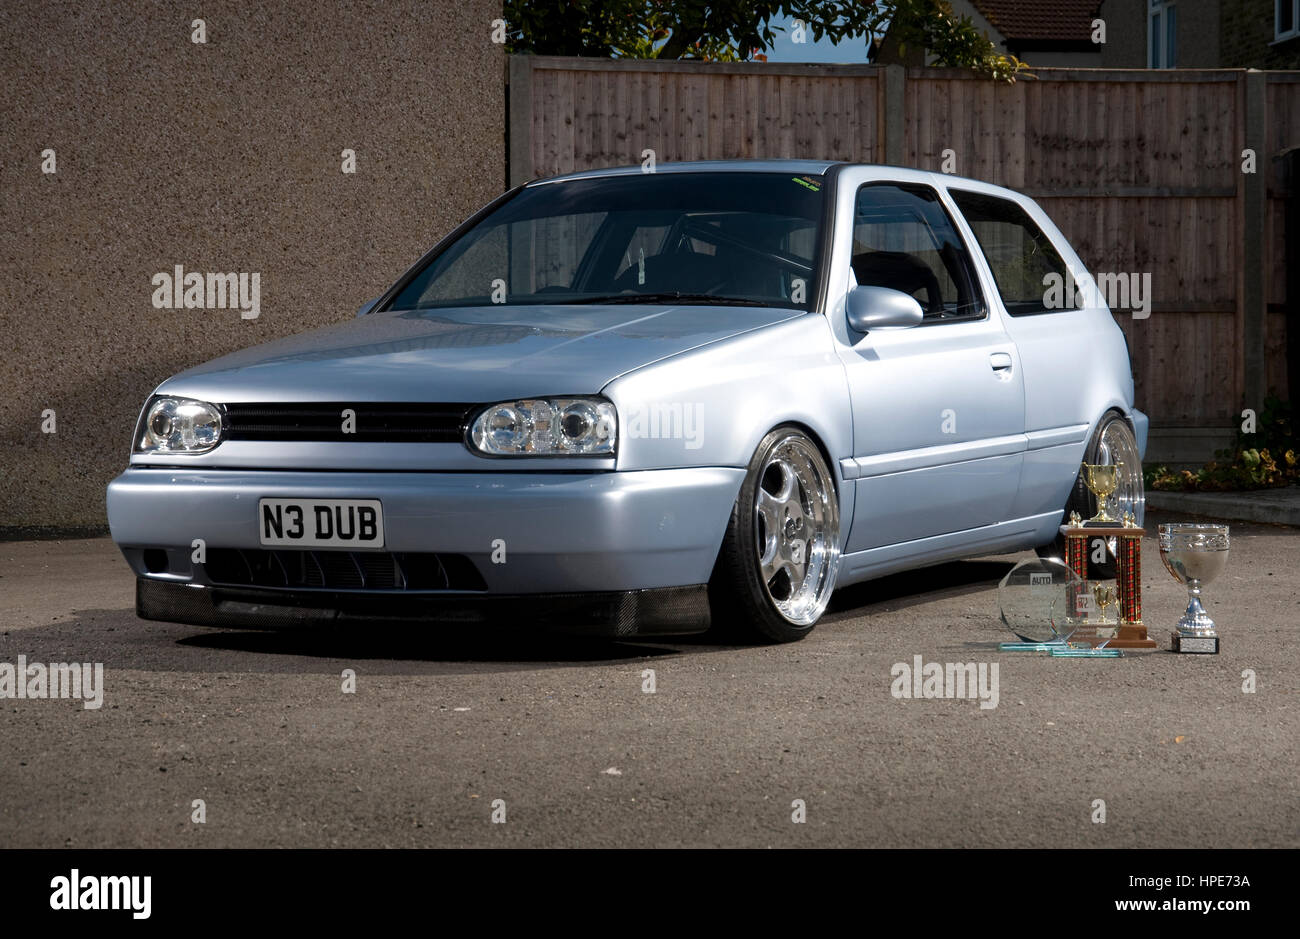 Volkswagen Golf Mk4 High Resolution Stock Photography And Images Alamy